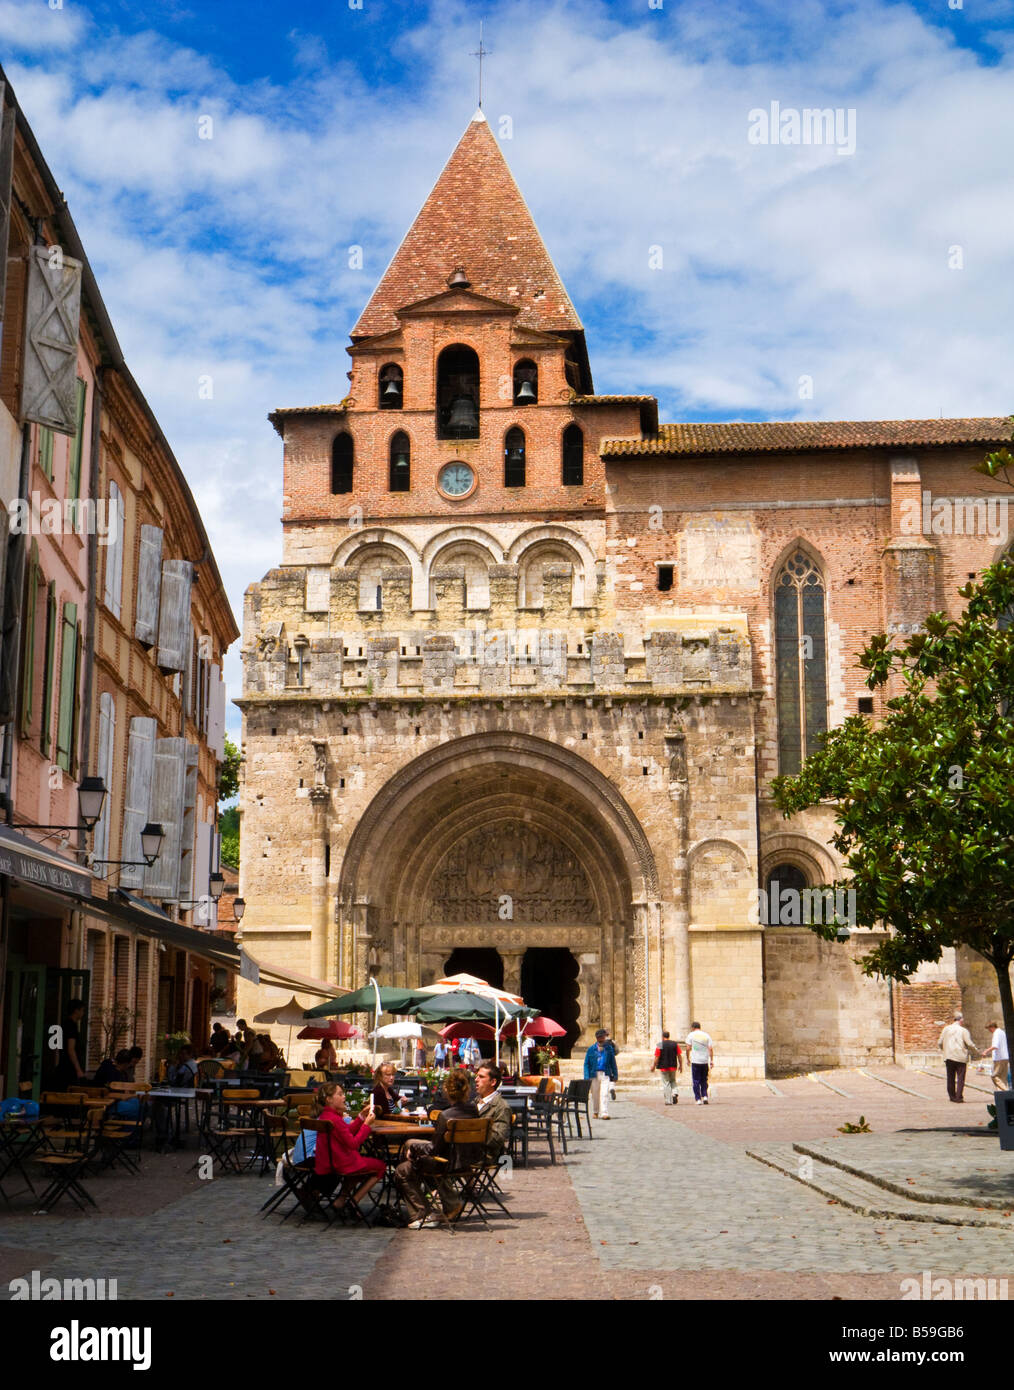 The Abbaye Saint Pierre de Moissac in Moissac, Tarn et Garonne, France, Europe - Stock Image